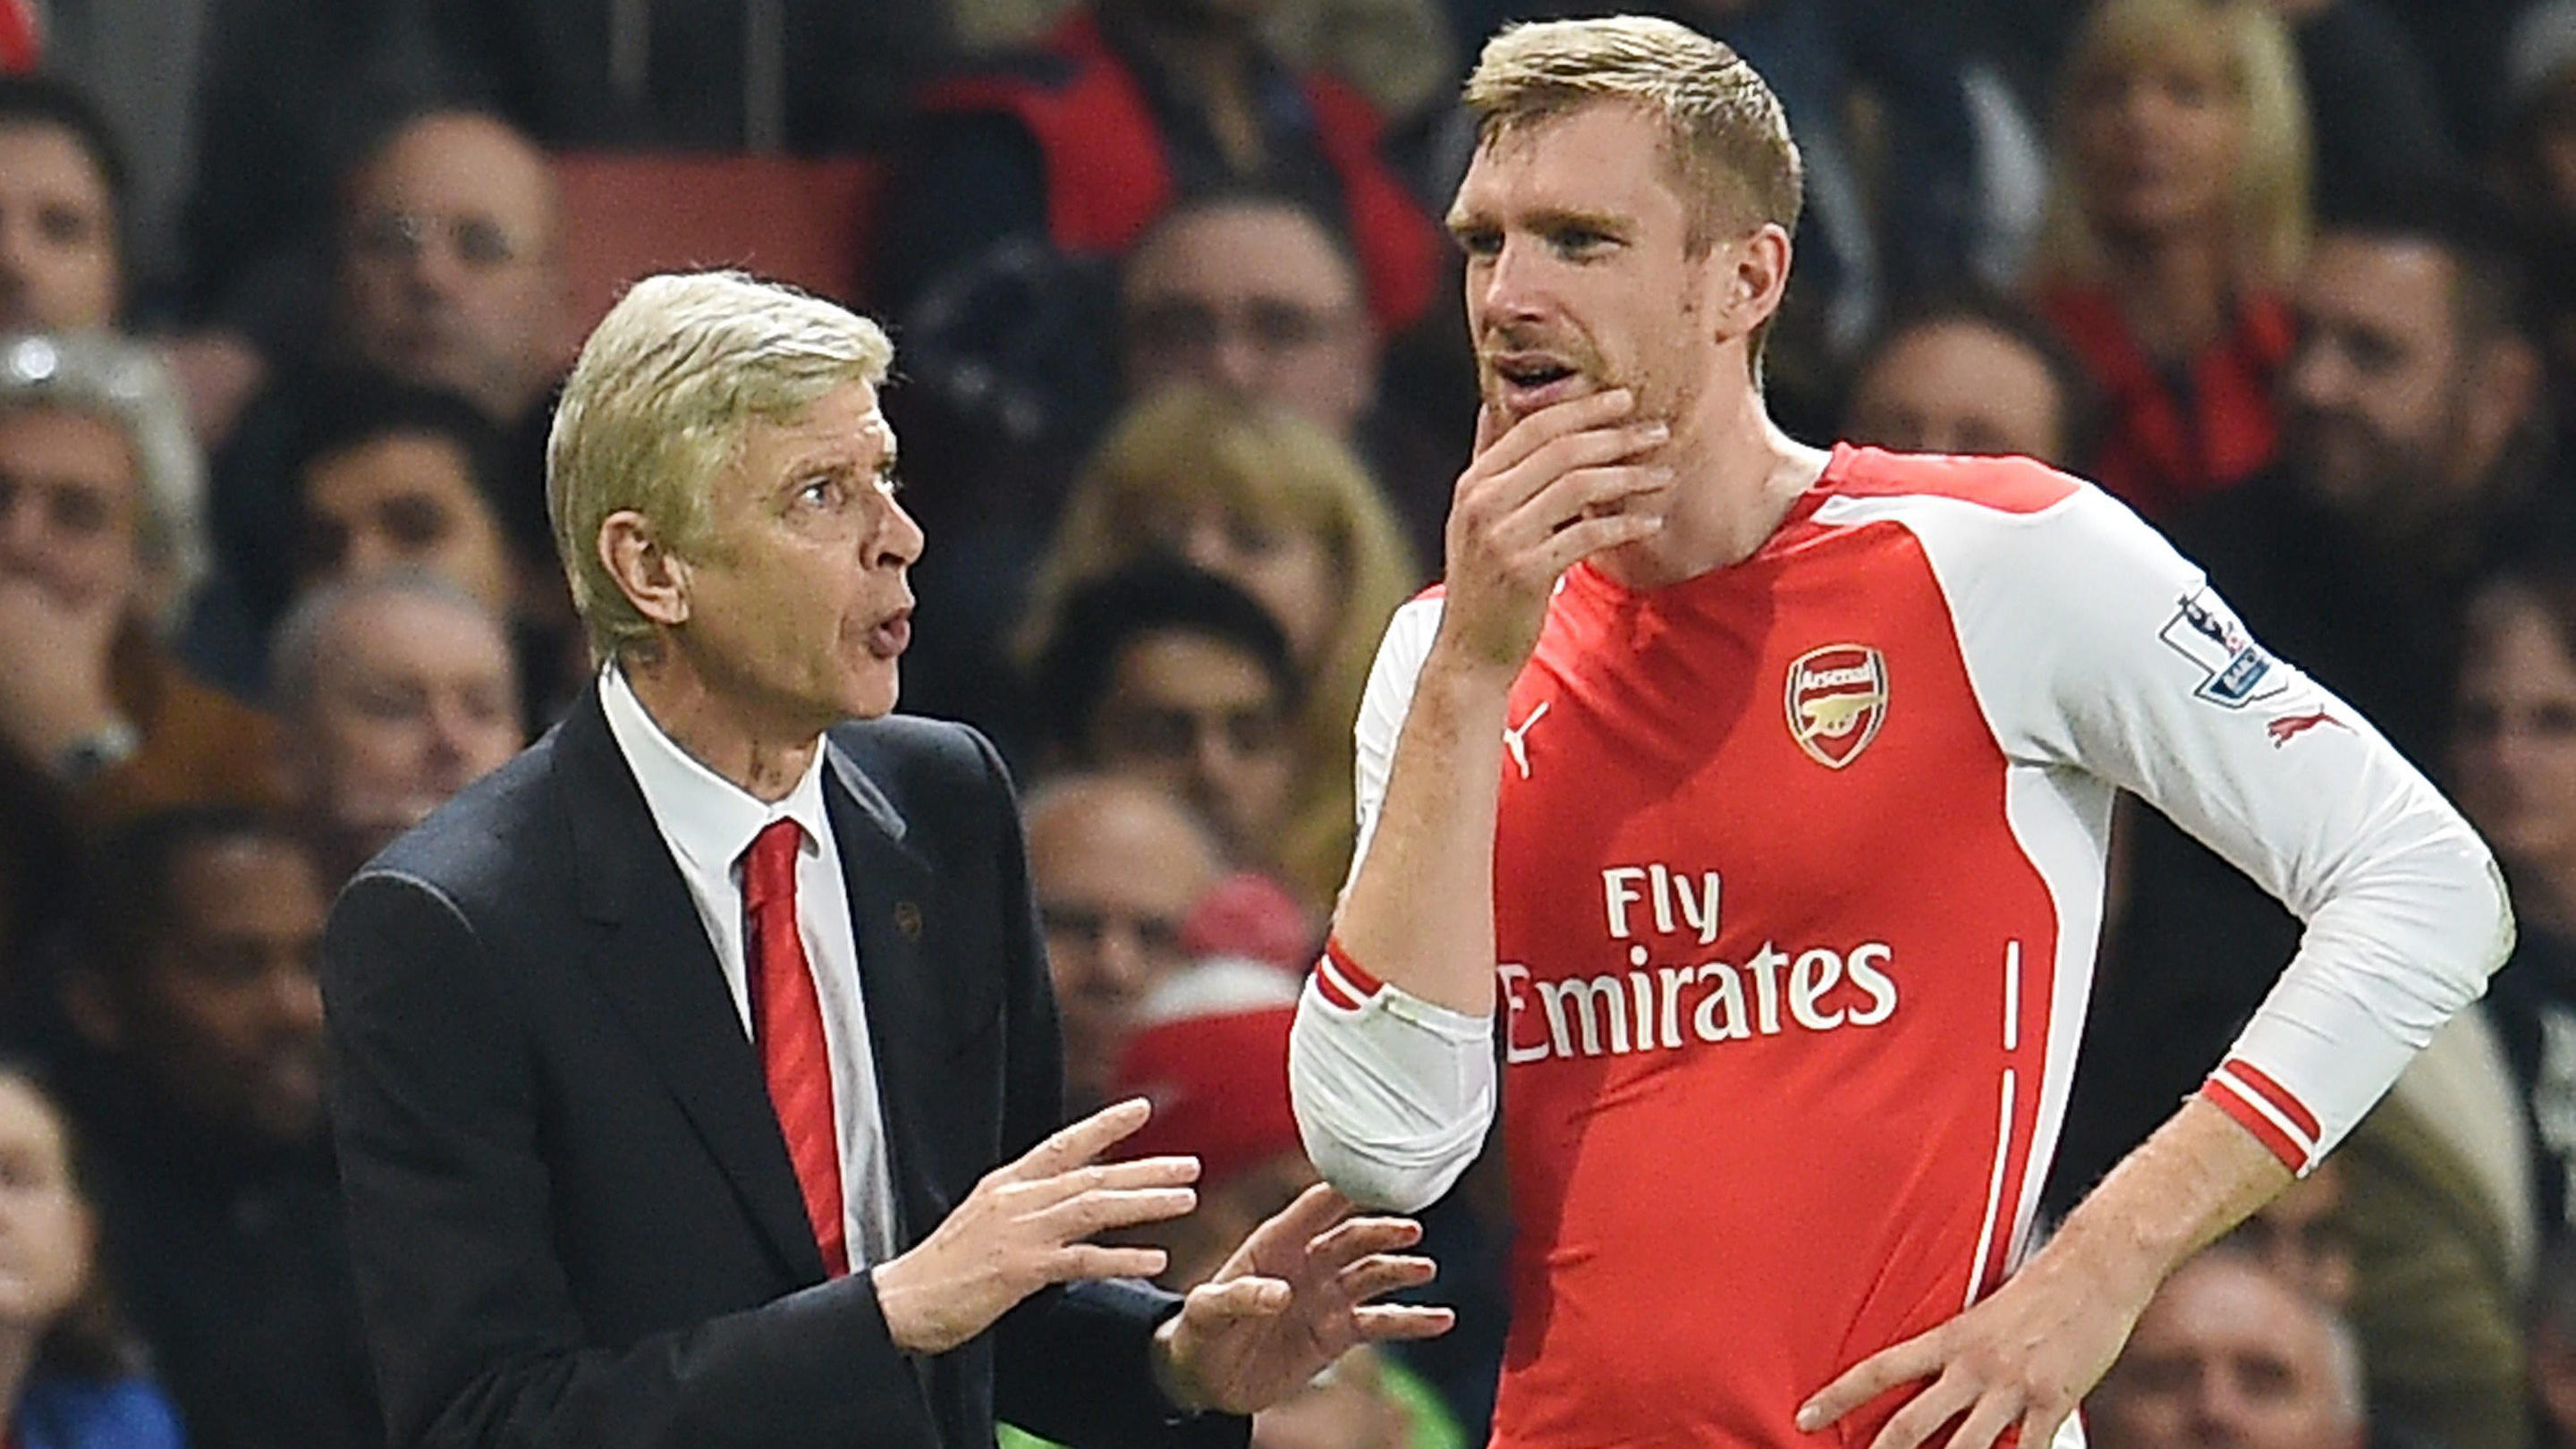 ARCHIV - Arsenal manager Arsene Wenger (L) speaks with Arsenal's Per Mertesacker (R) during the English Premier League soccer match between Arsenal and Manchester United at the Emirates Stadium in London, Britain, 22 November 2014. EPA/ANDY RAIN Data